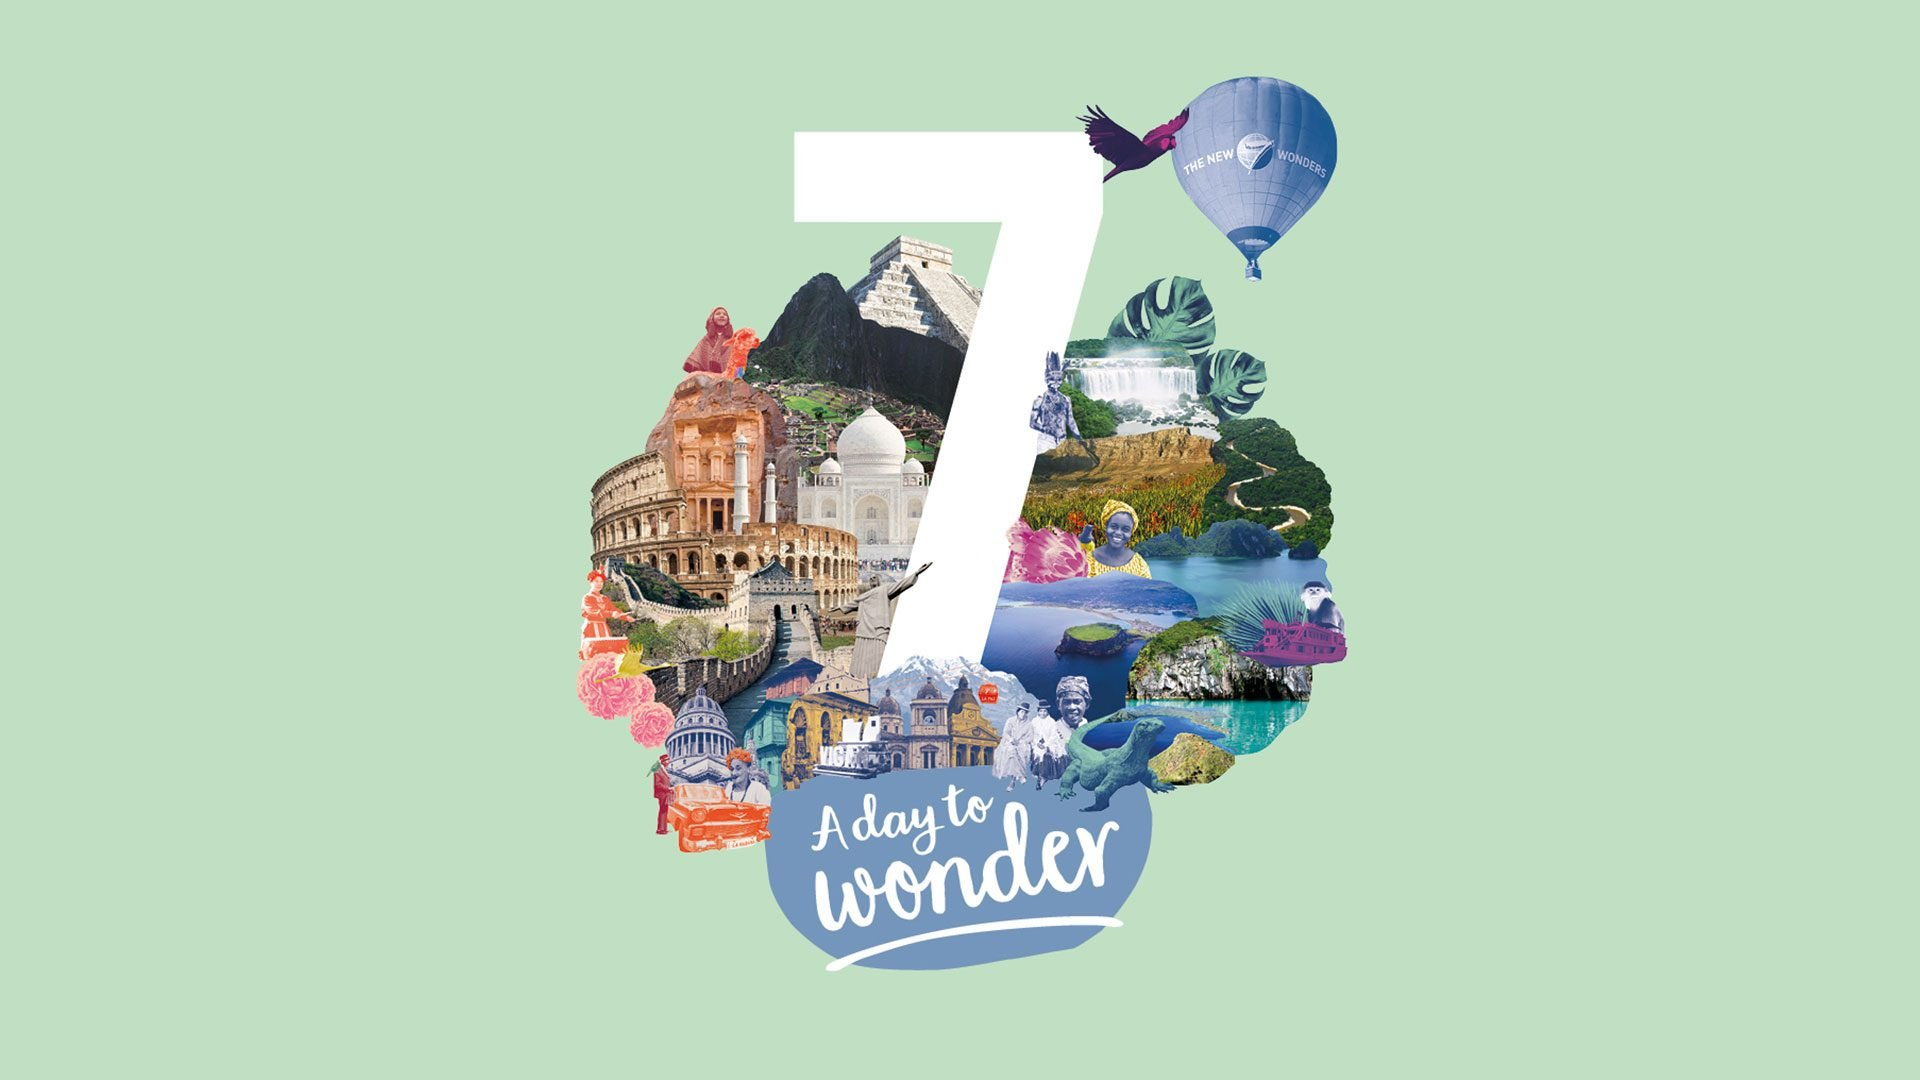 The Event Honours 21 Iconic Wonders Chosen By Hundreds Of Millions Votes